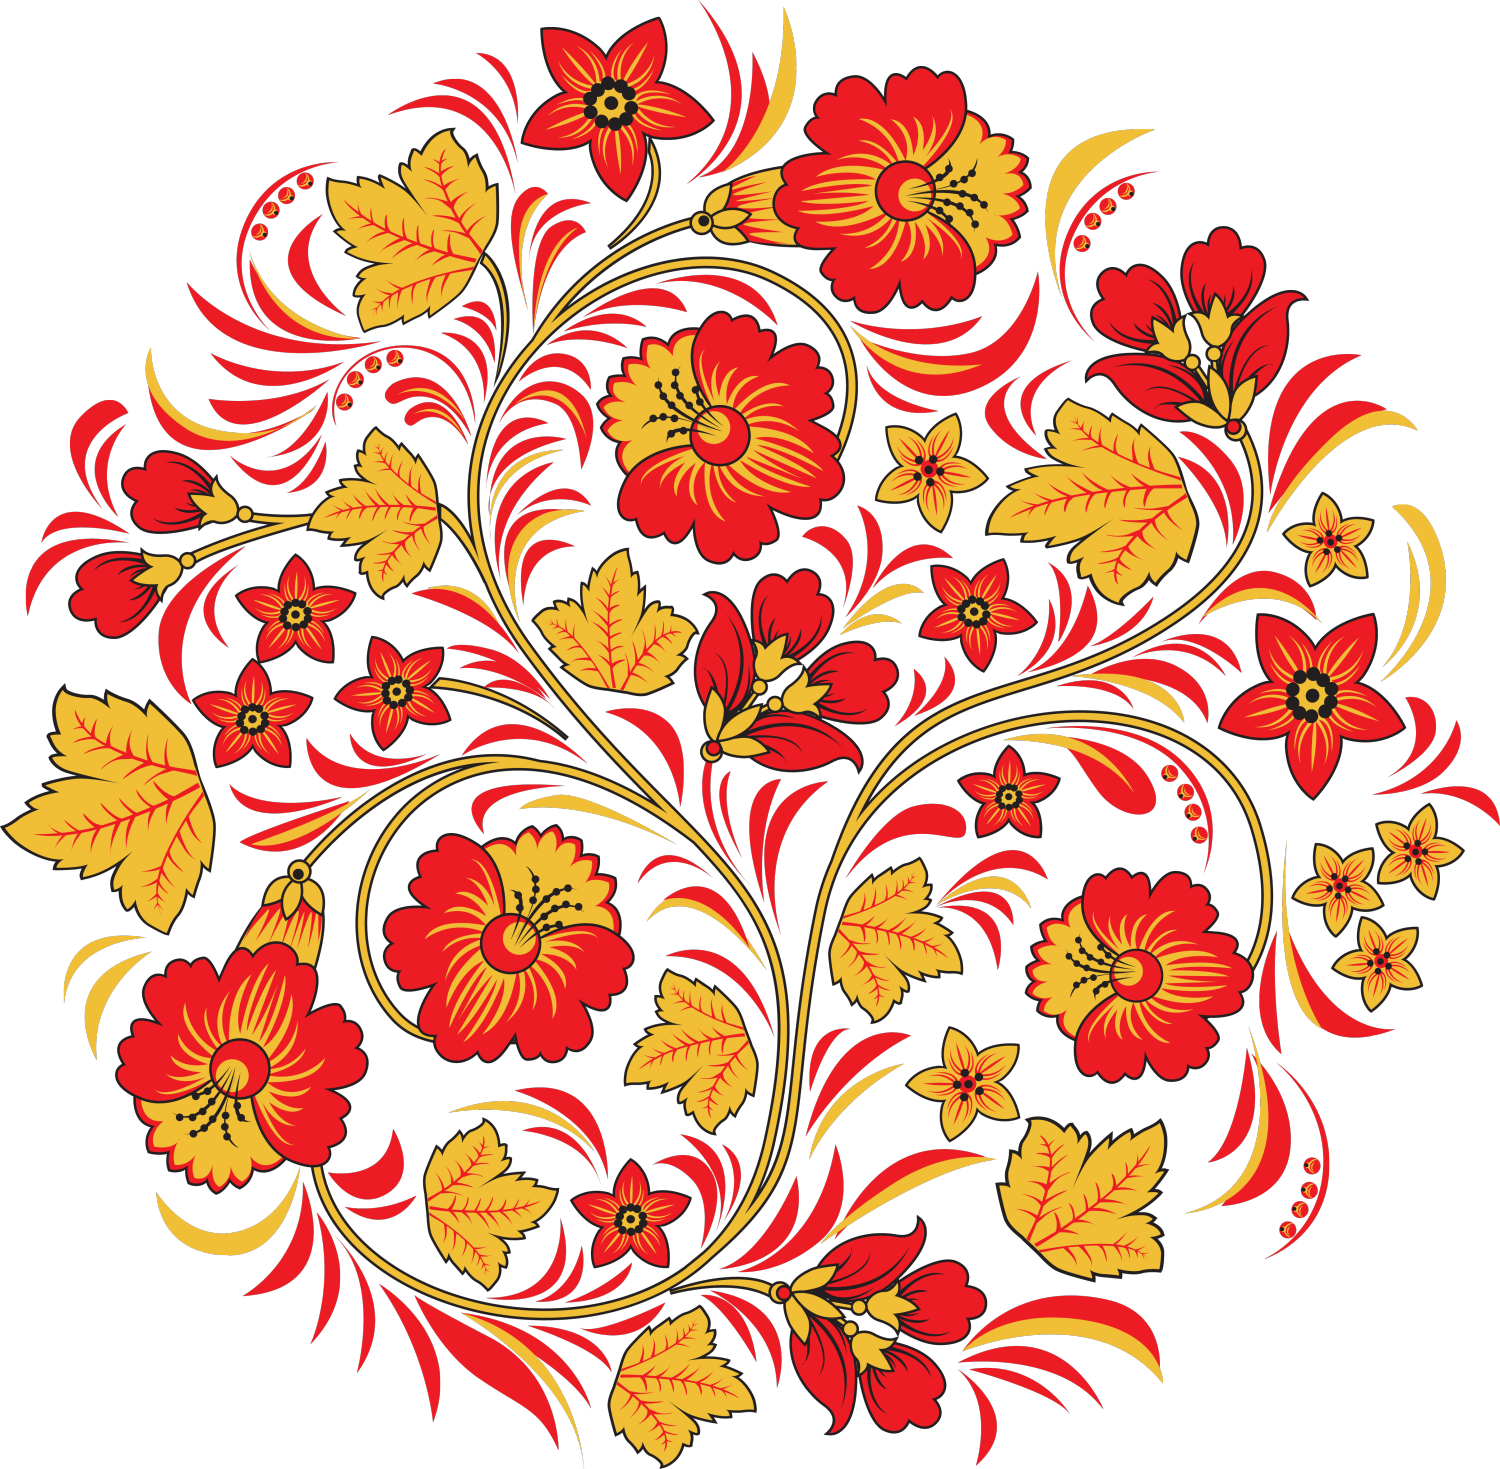 Mexican flower clipart png graphic freeuse download роспись-e1481376616357.png (1500×1469) | Орнамент | Pinterest graphic freeuse download